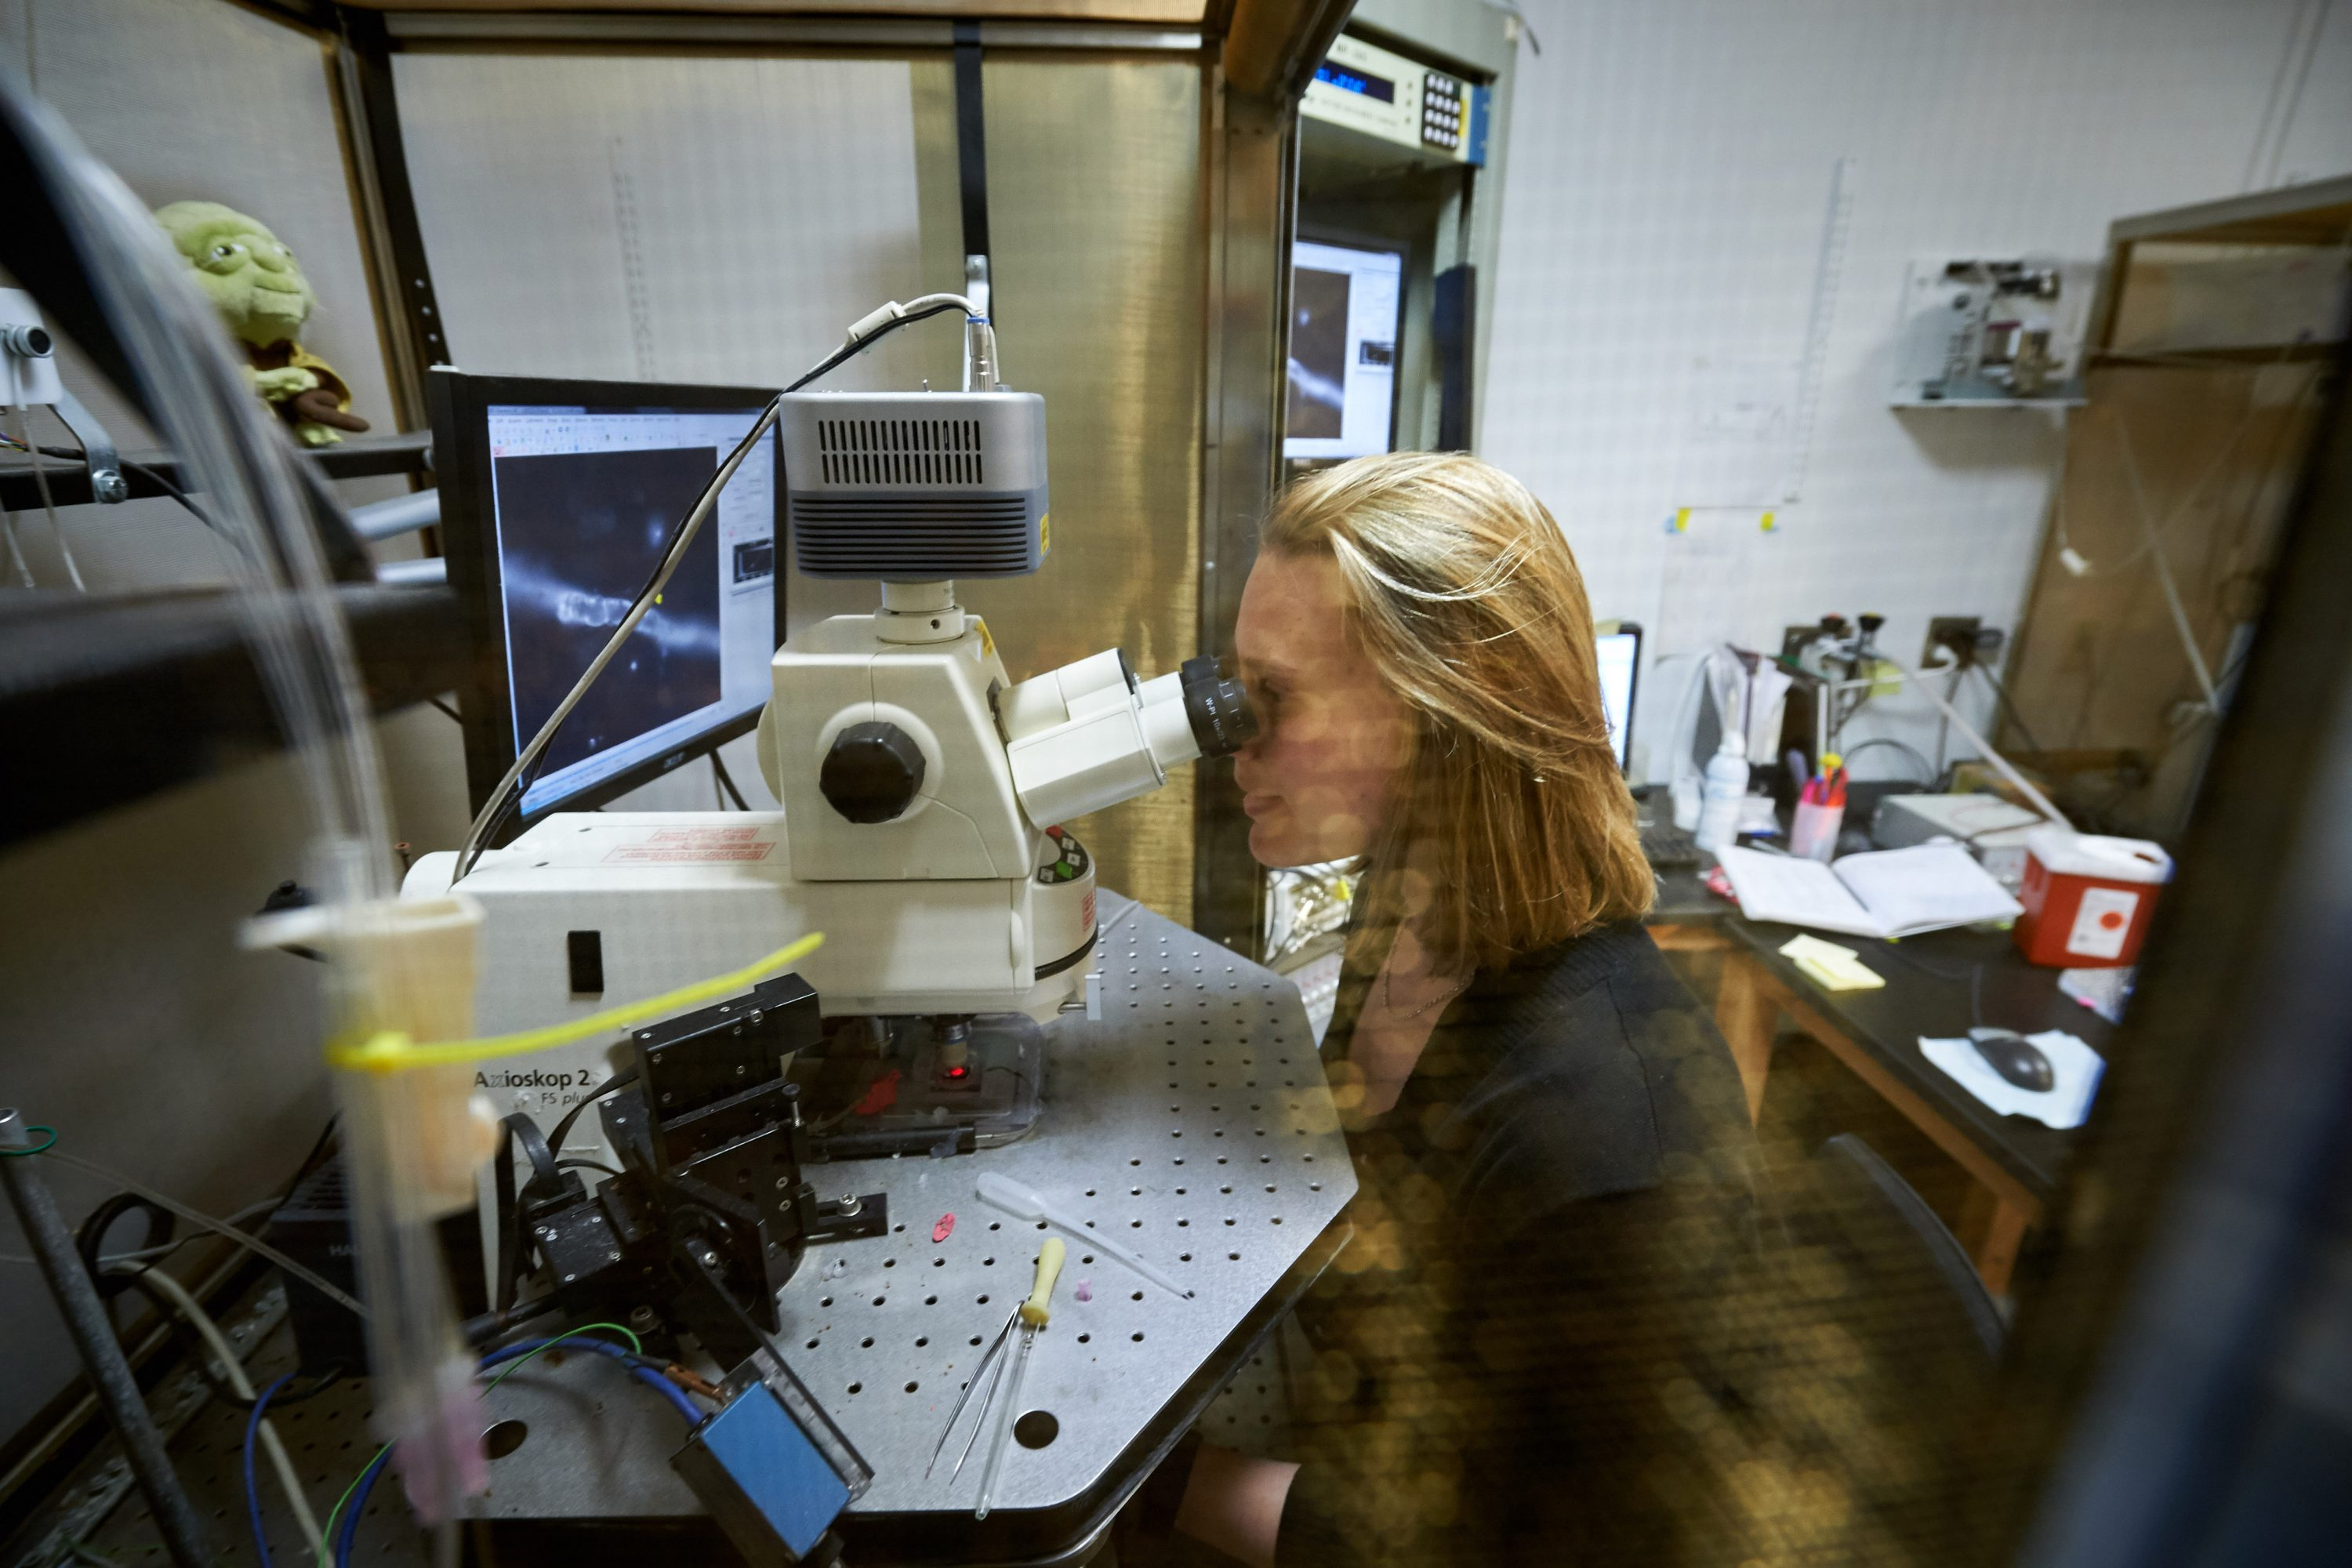 NIH postdoctoral fellow Virginia Hawkins looks though a microscope at the Pharmacy/Biology Building. (Peter Morenus/UConn Photo)